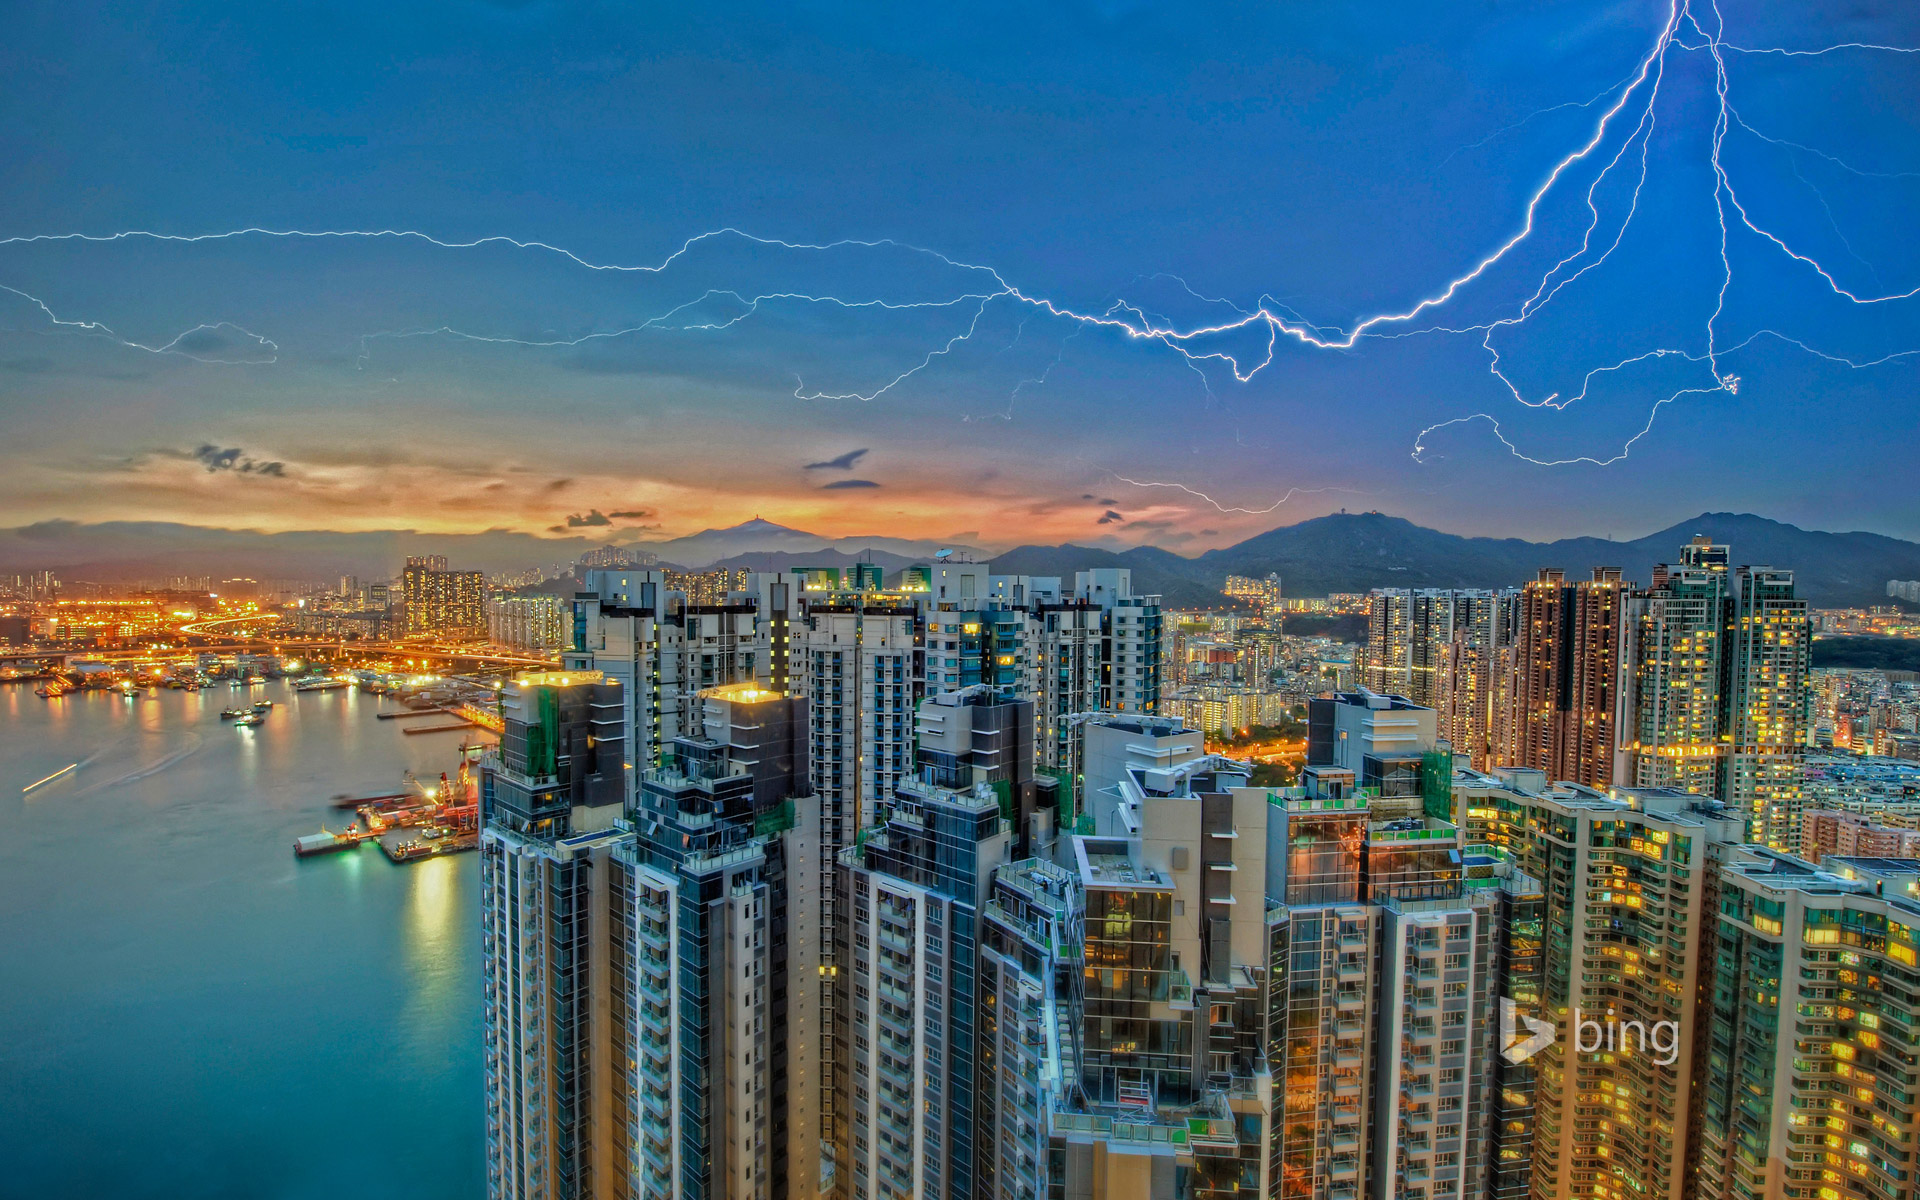 Lightning over Kowloon, Hong Kong